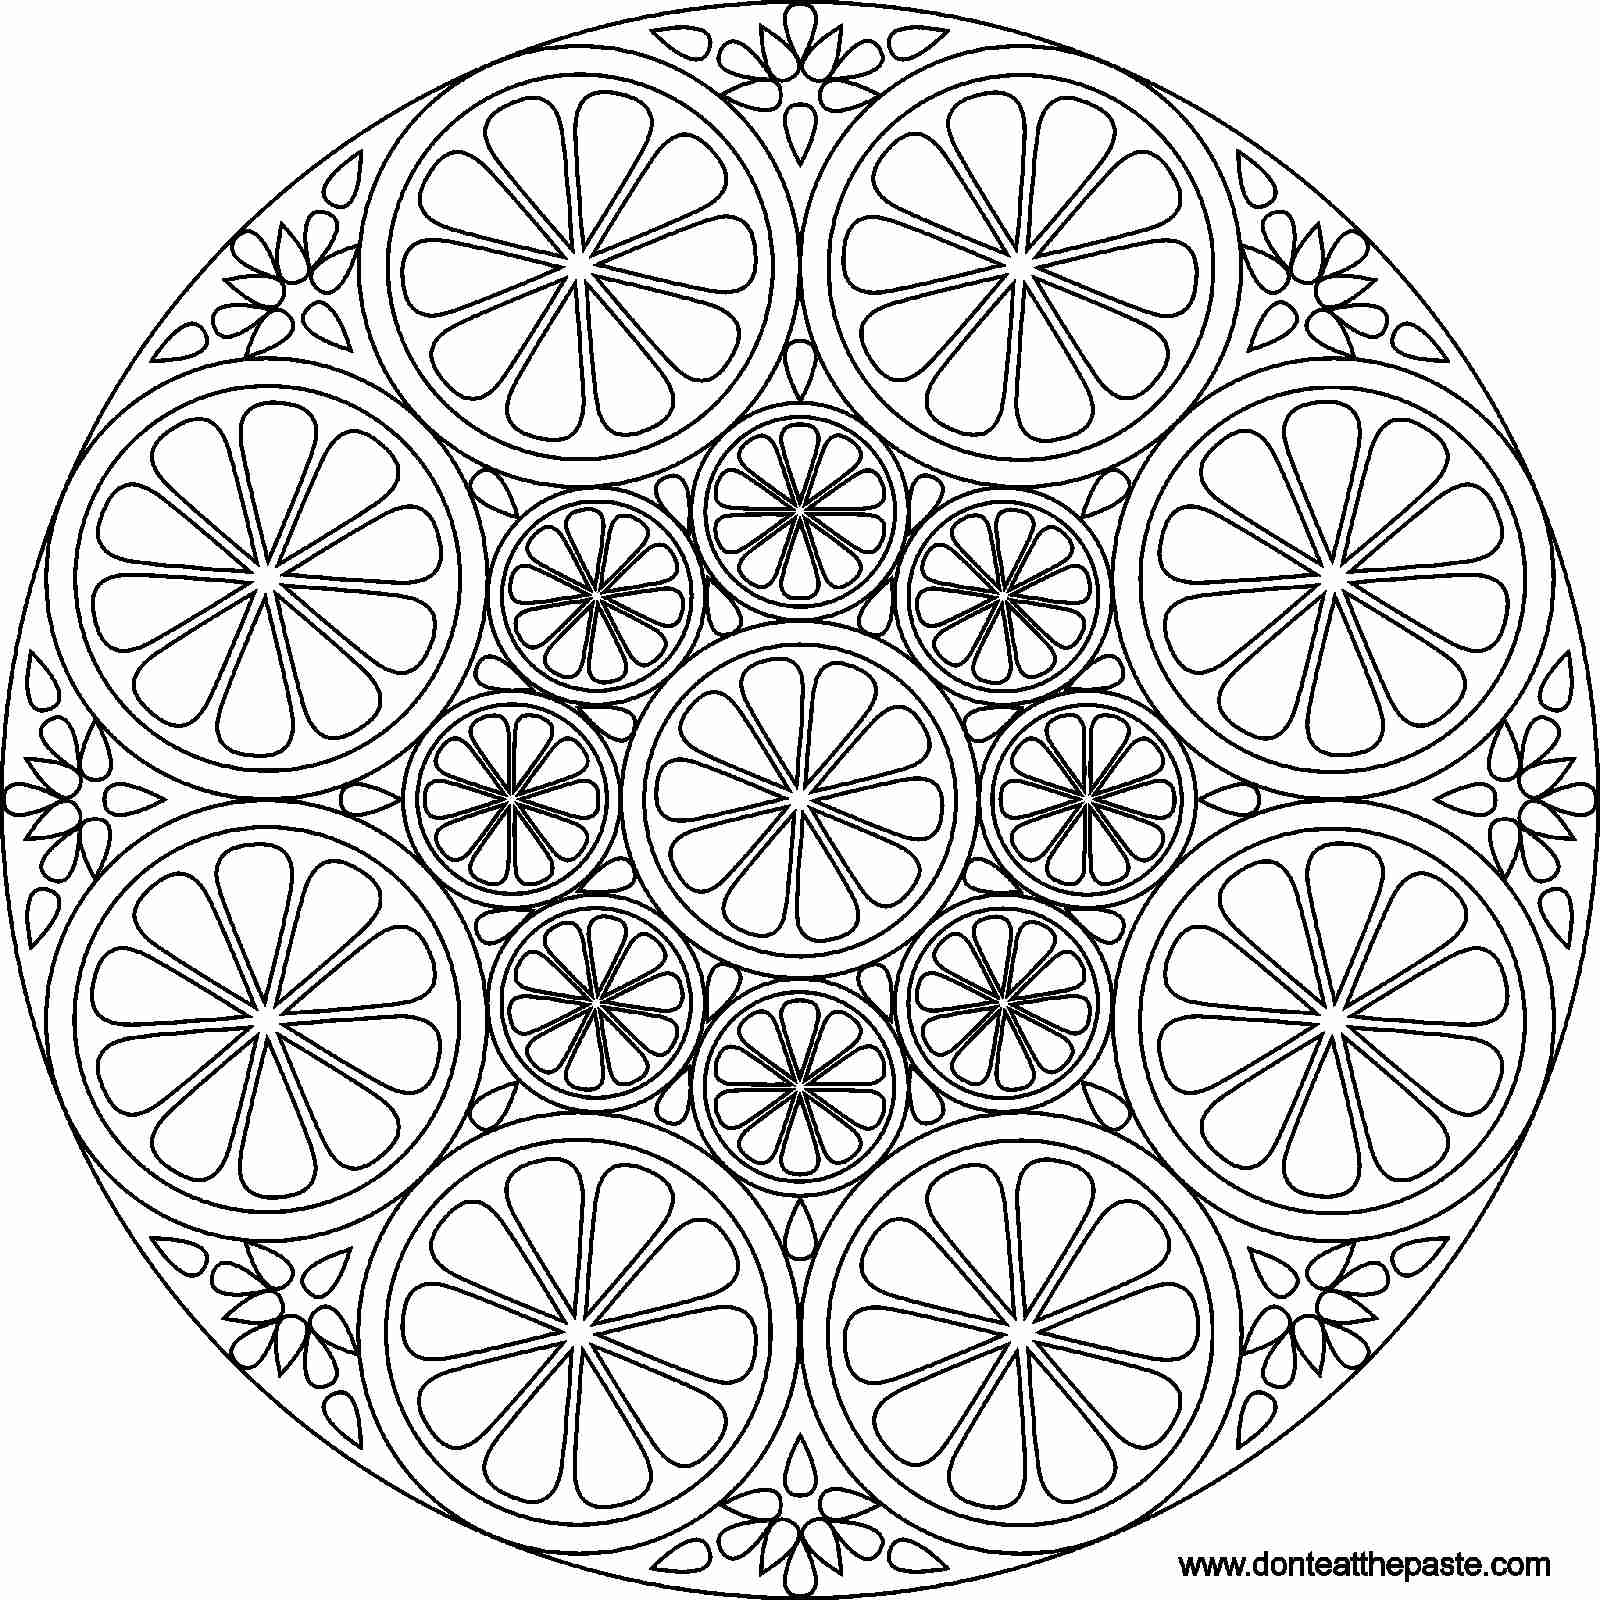 1600x1600 Mandala Coloring Pages Advanced Level Google Search Incredible